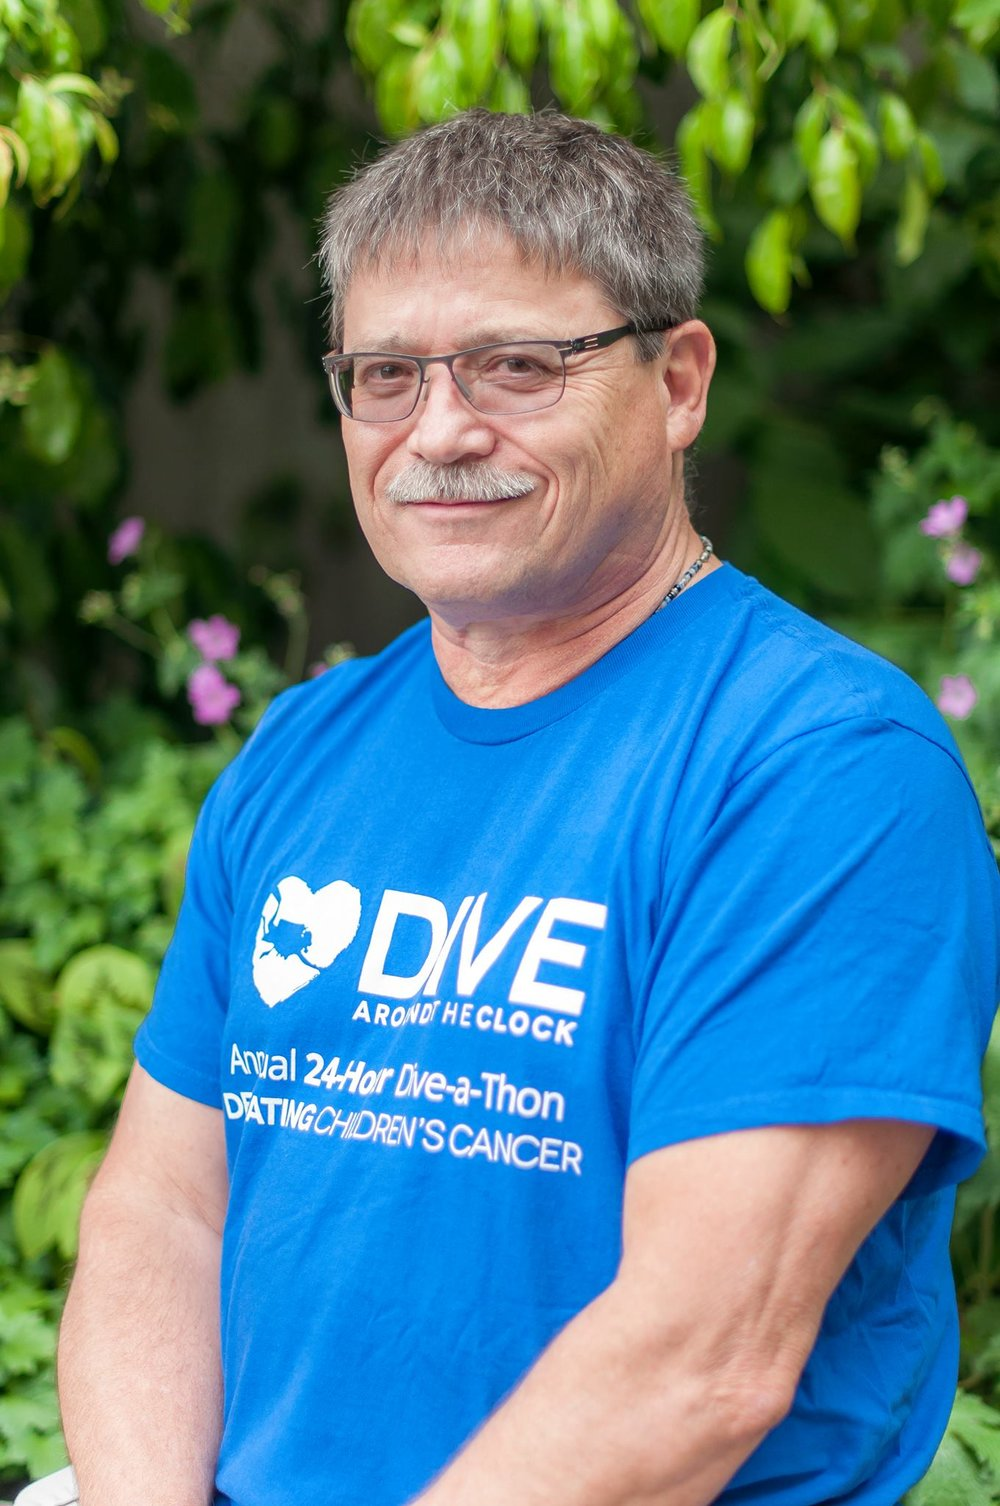 LARRY TRENDA DATC Co-Founder & President (2006 - 2015)